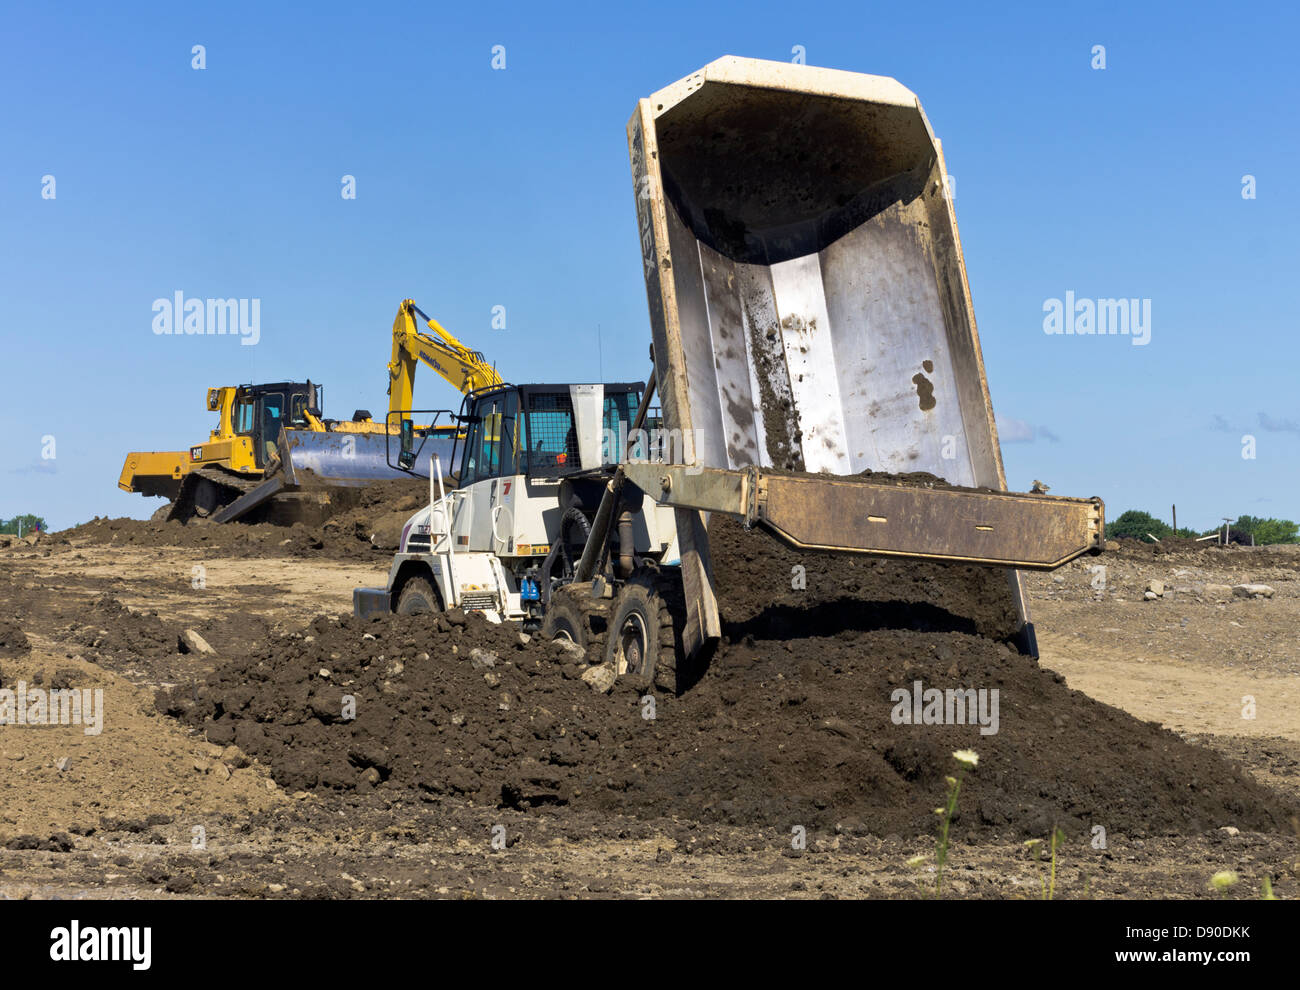 Dump Truck Unloading Earth On Construction Site